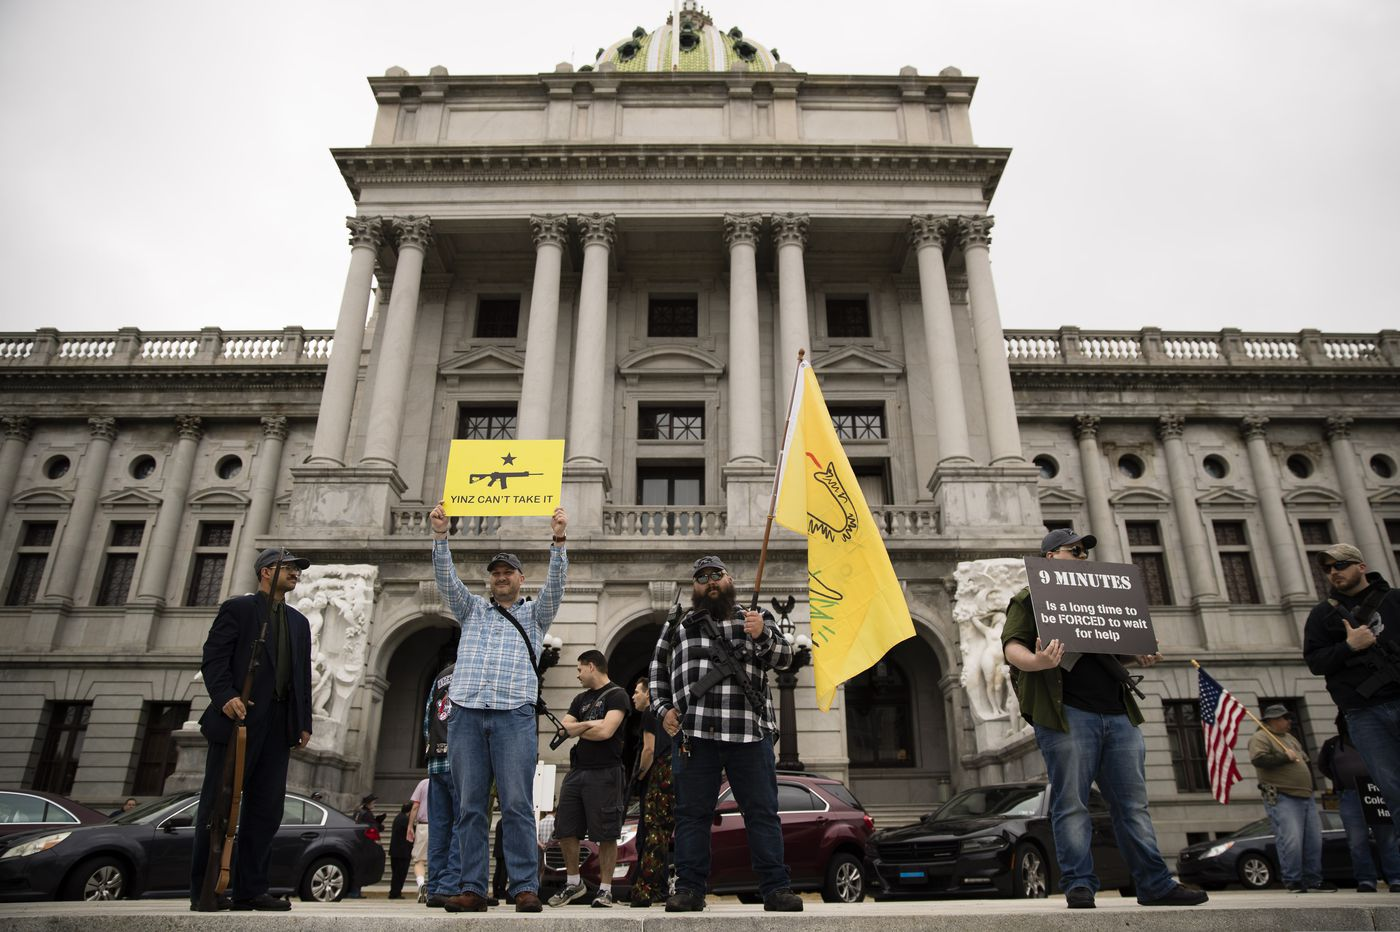 Pa. senate gun bill simply supports existing laws | Opinion